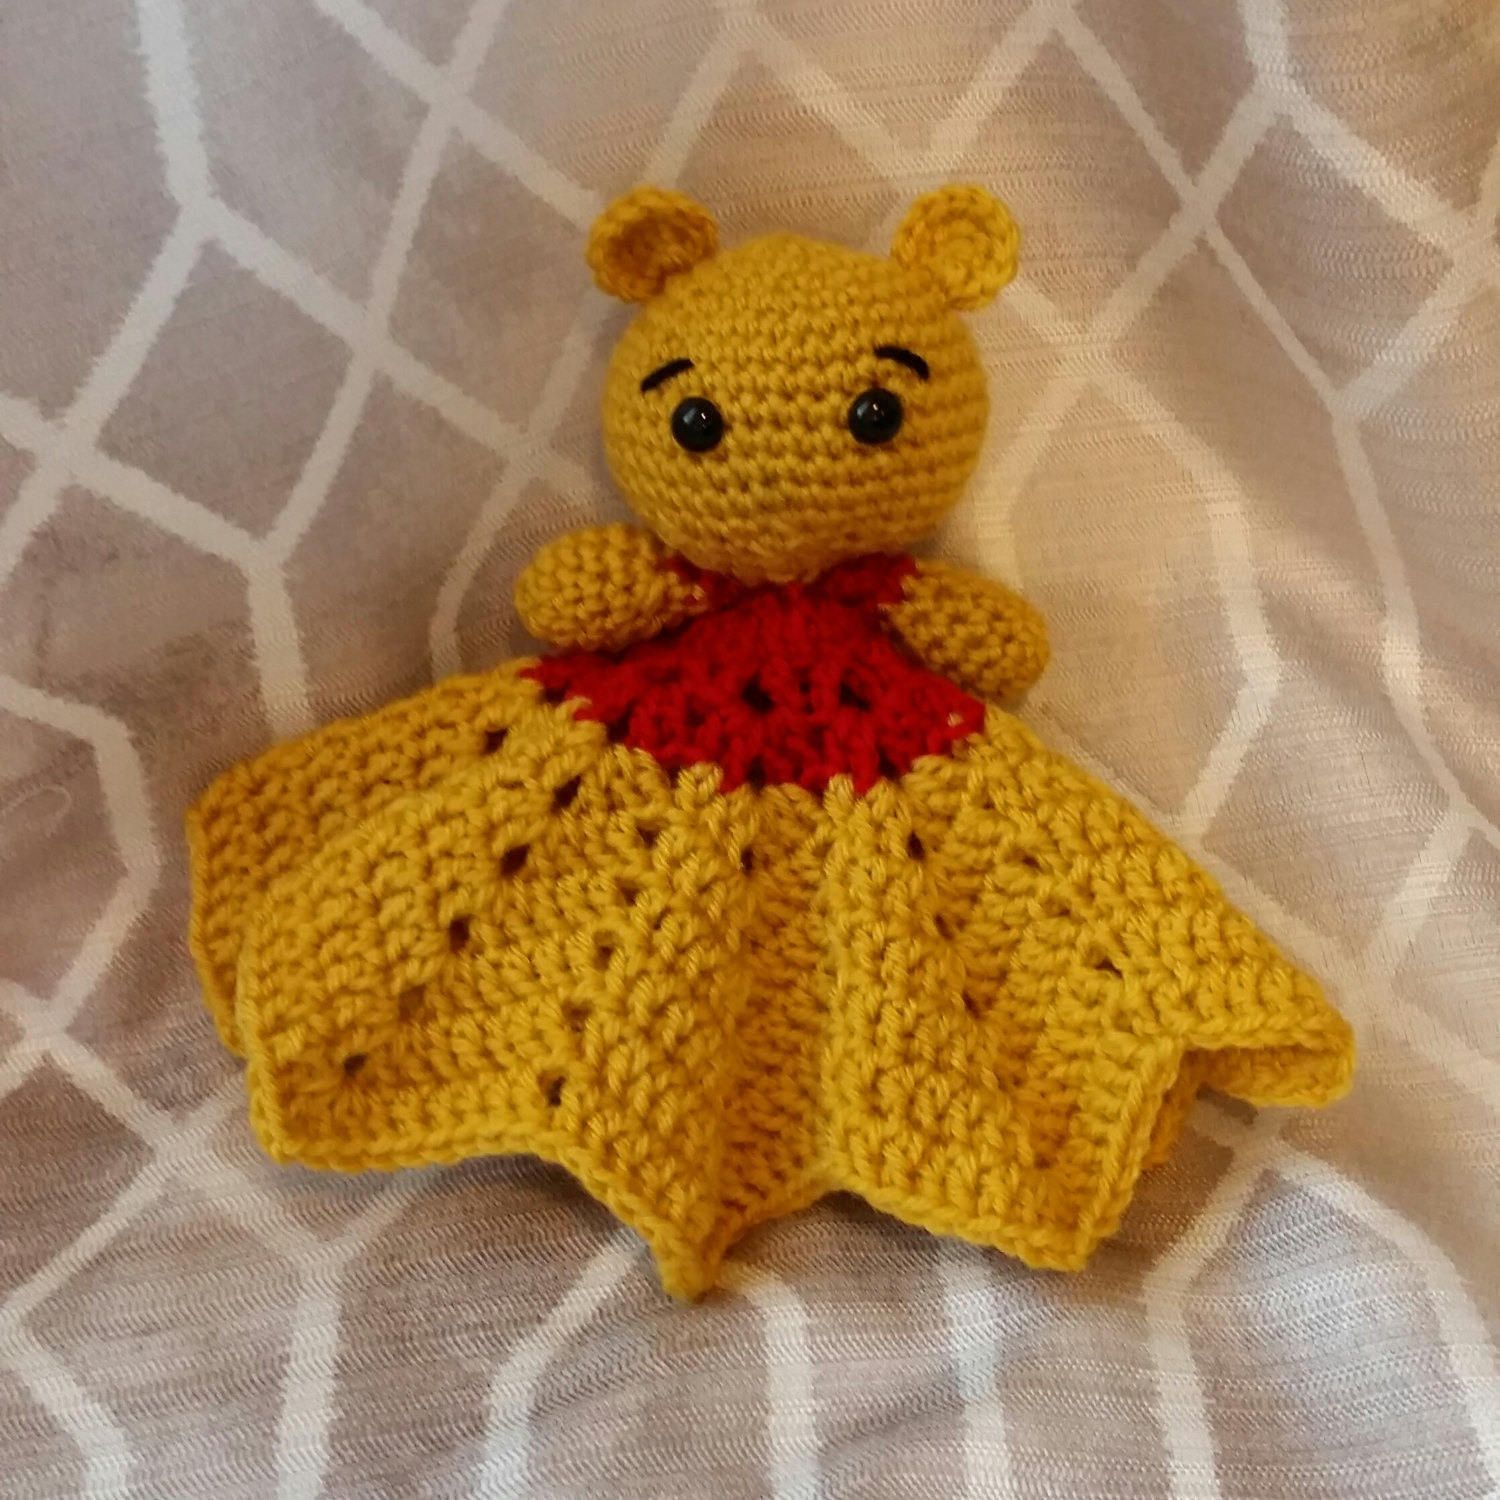 Crochet Winnie The Pooh Inspired Lovey by SnugAsABugHandCrafts on Etsy